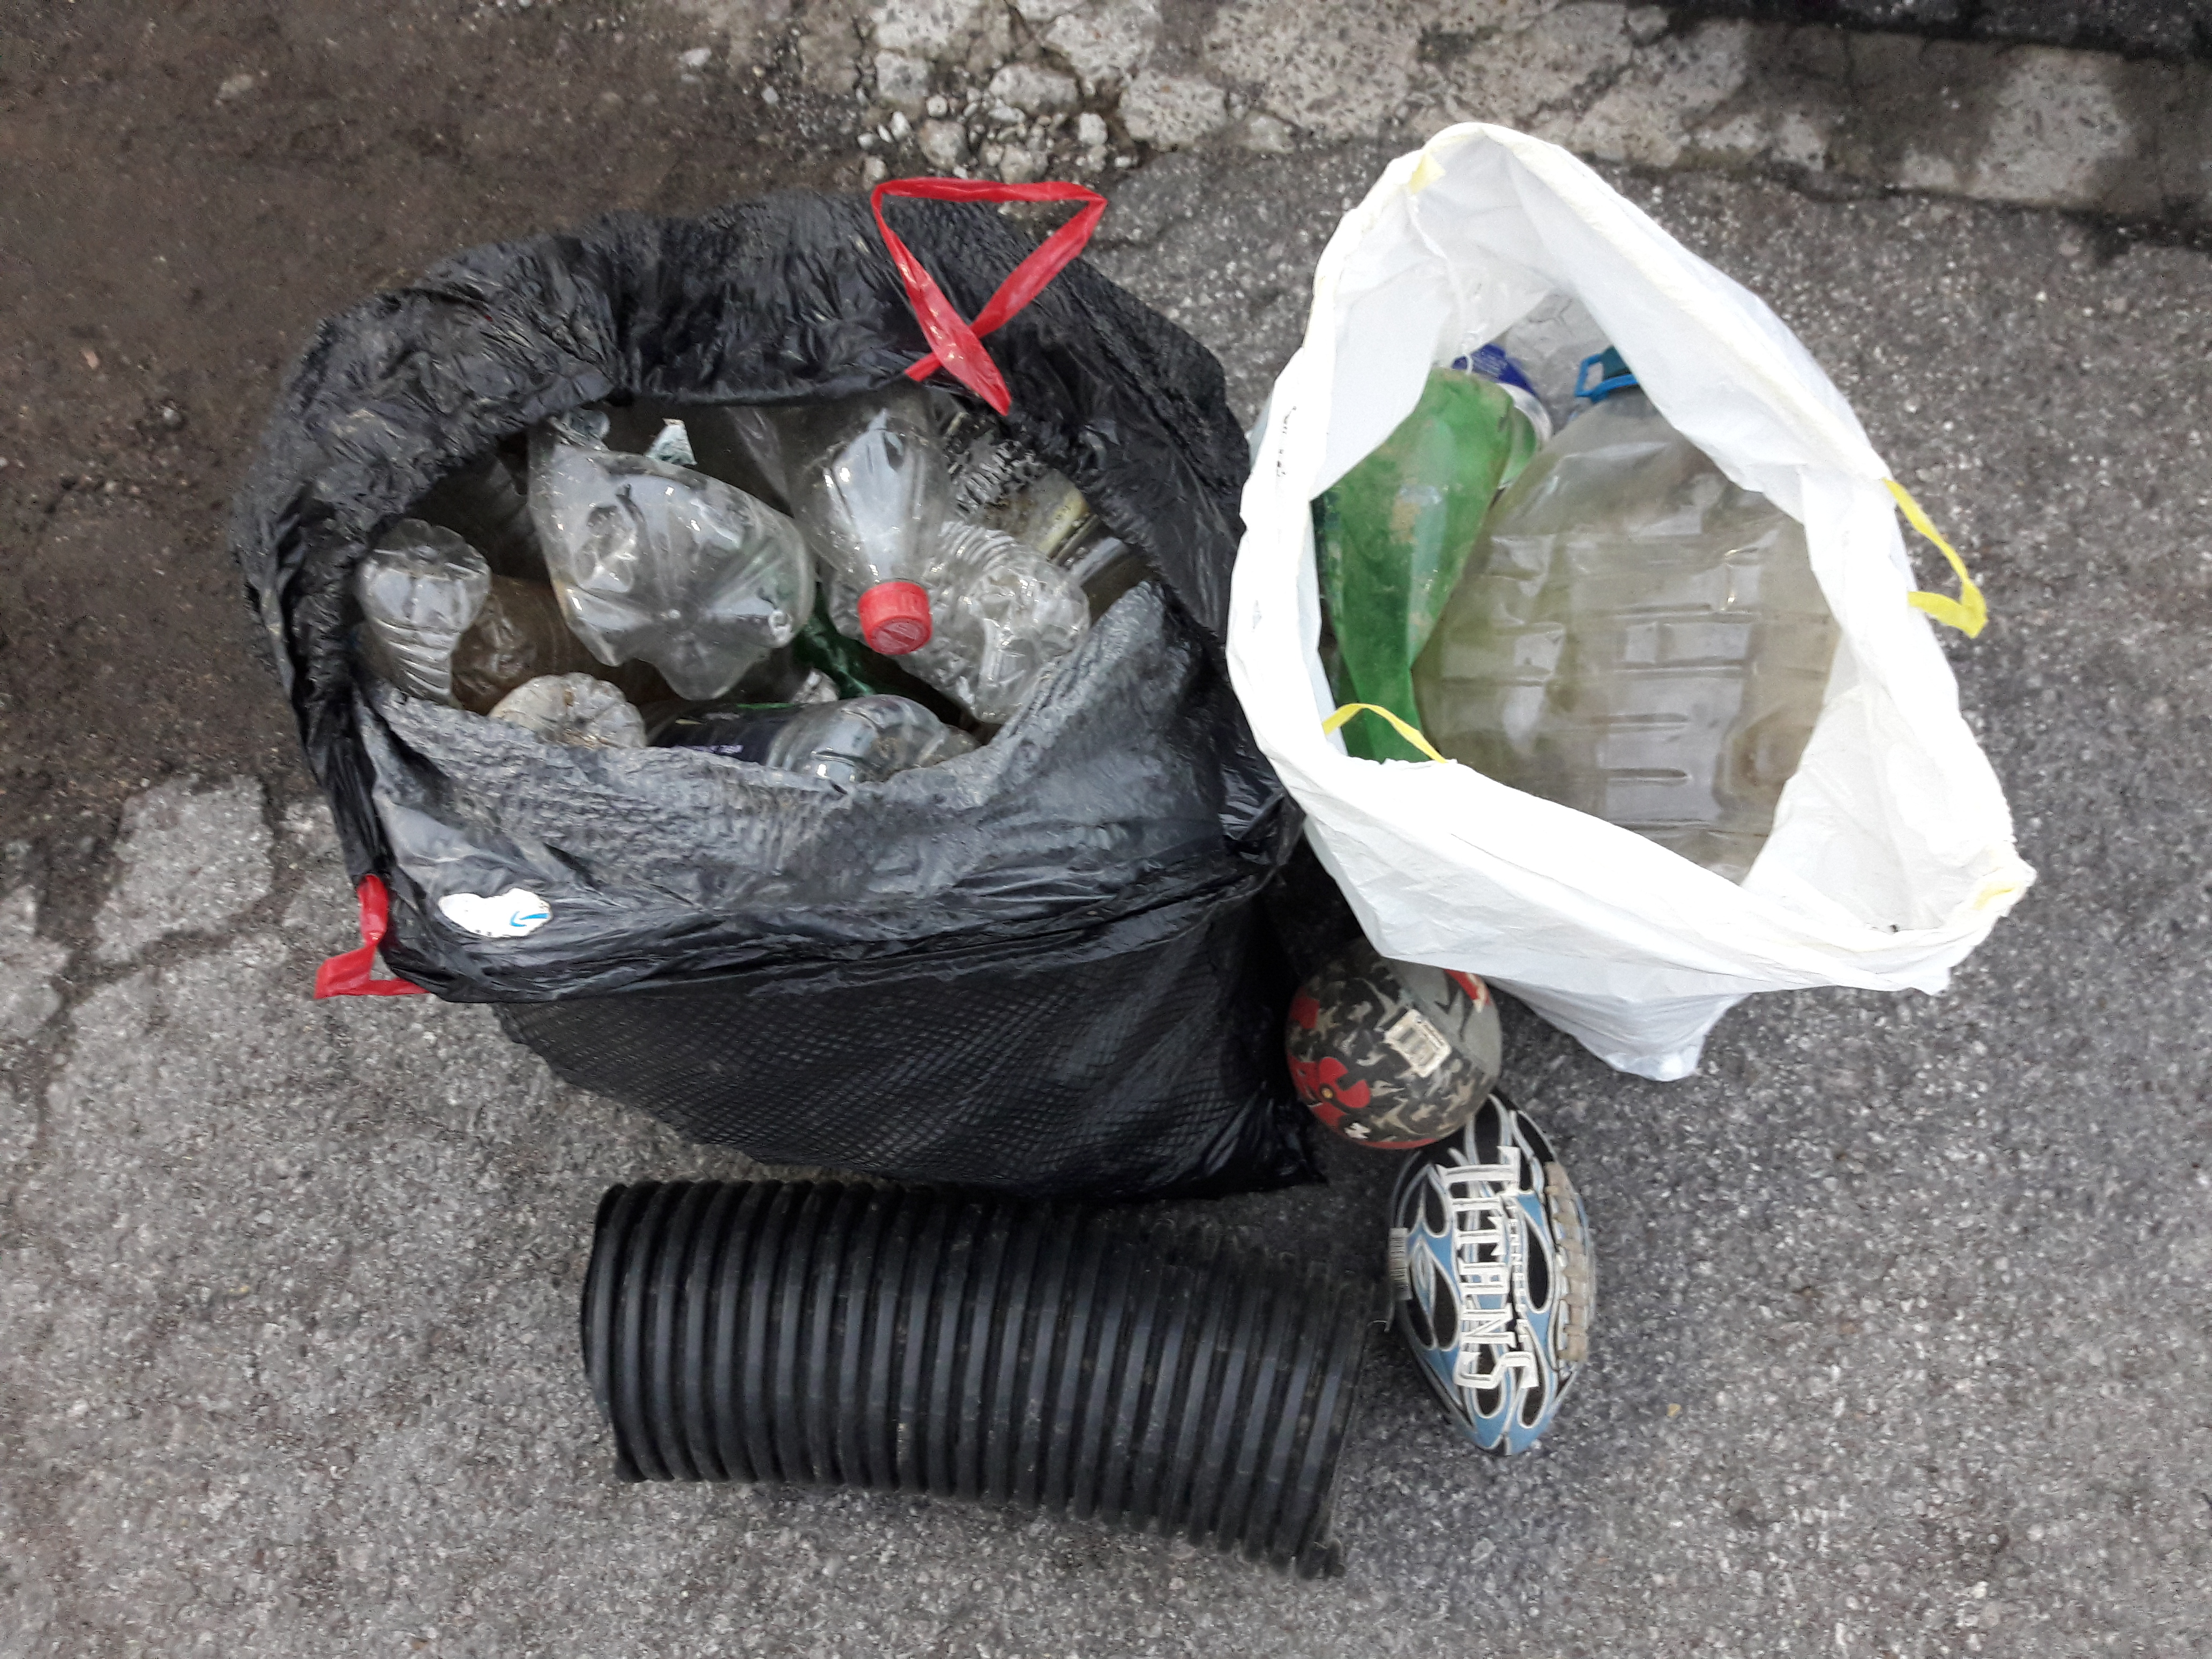 Two small rubber balls and two bags full of disposed cans of beverage, plastic bottles and glass bottles